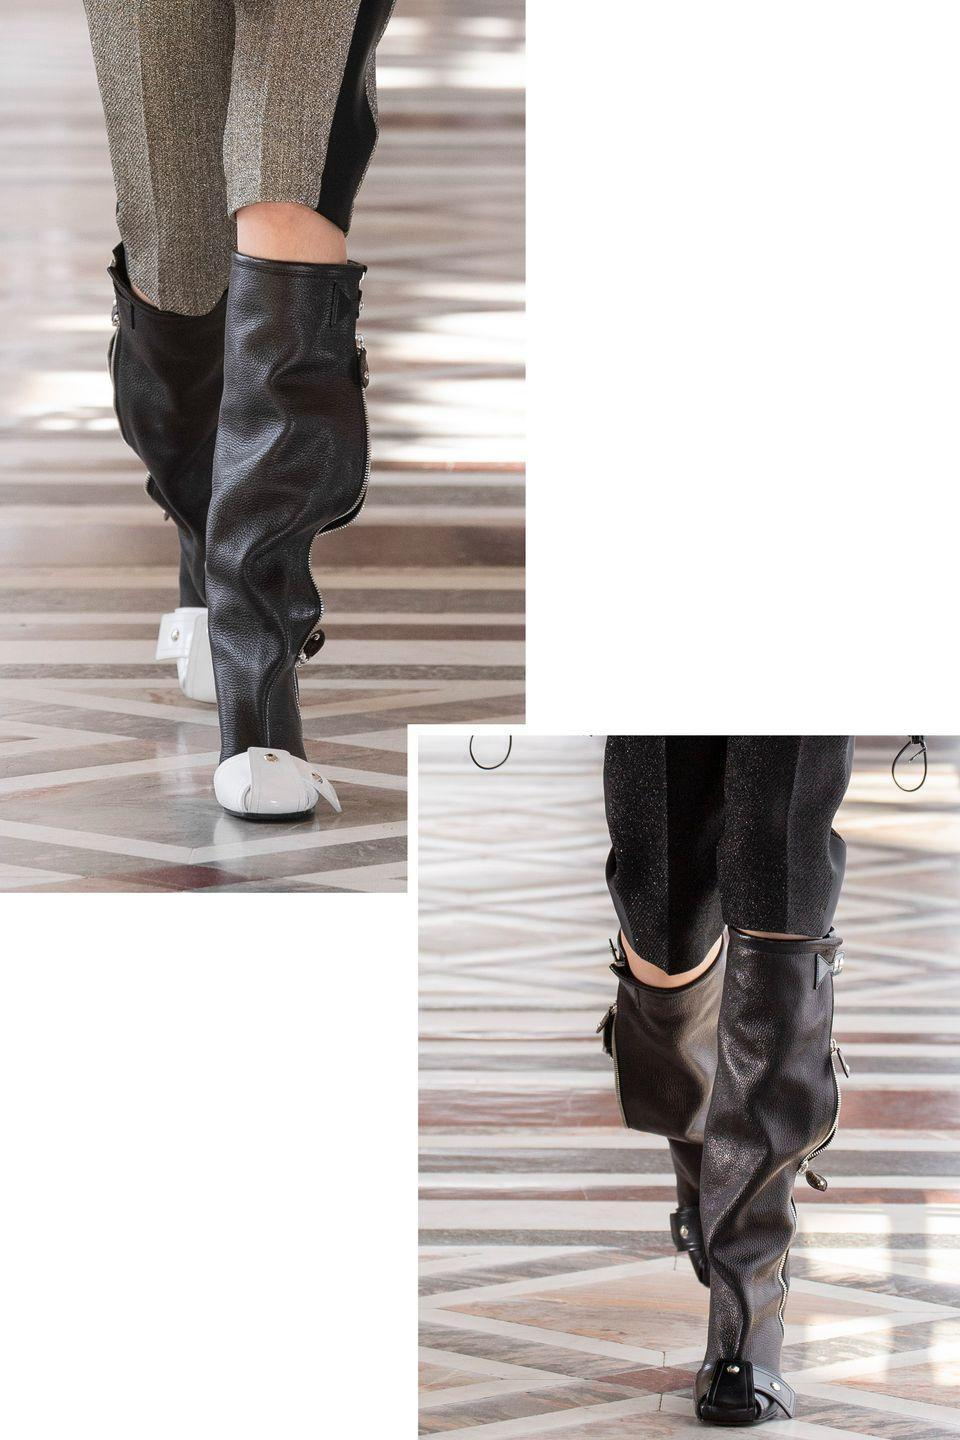 <p>A tailored Bermuda short worn with a below the knee slouchy boot is so cool on many levels—and is an ideal in to transitional dressing and proportion play. </p><p><em>Pictured: Louis Vuitton</em></p>